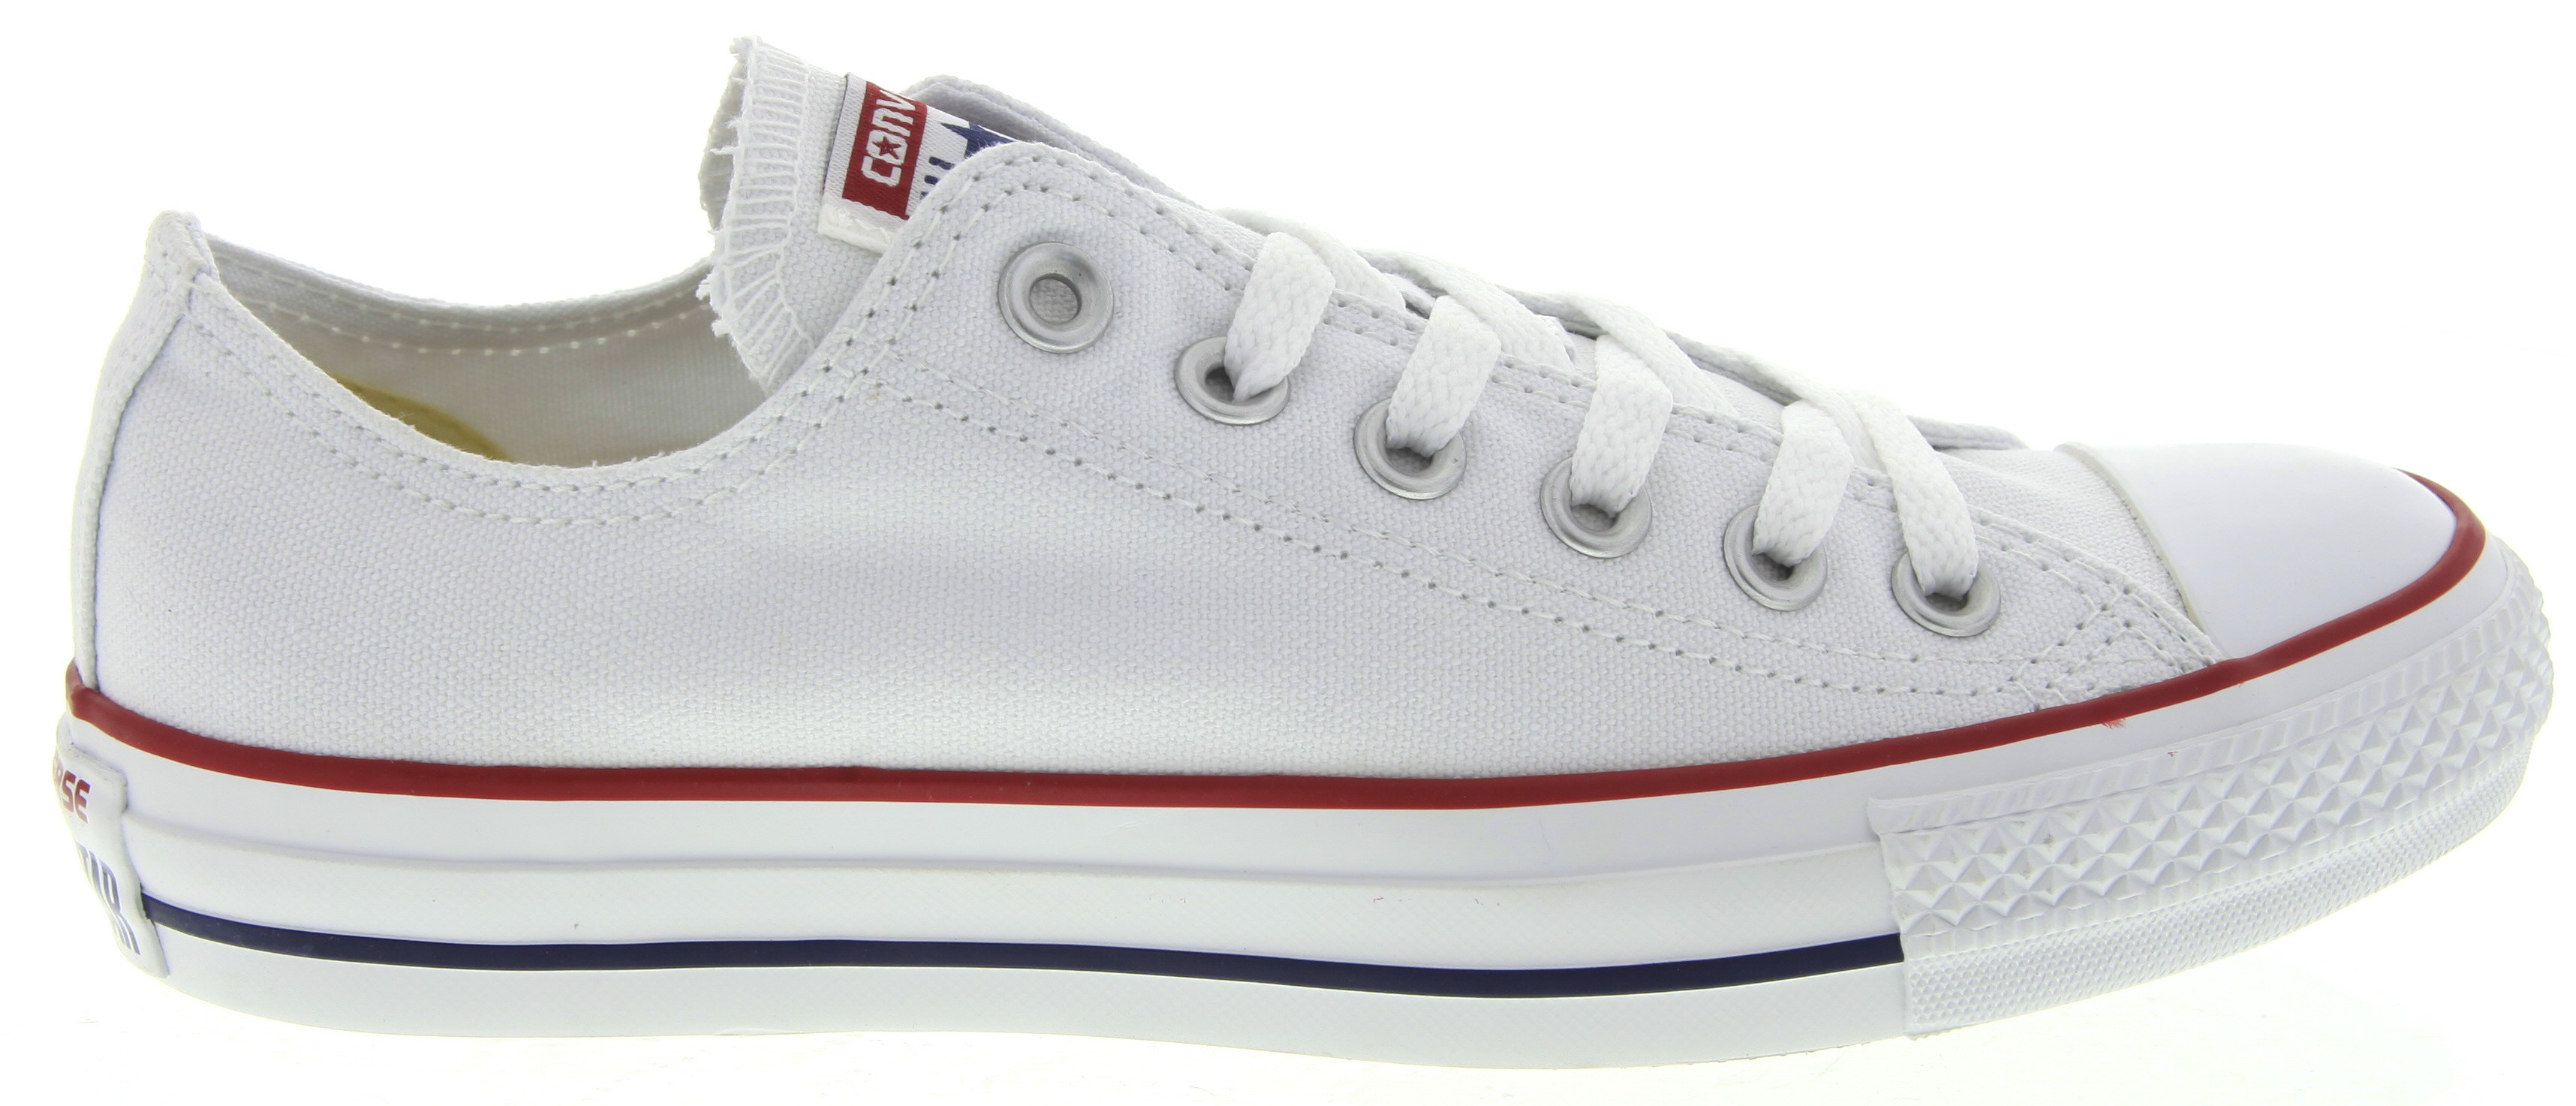 64c1d65c5287 Converse Chuck Taylor All Star Low Sneakers in White - Glue Store